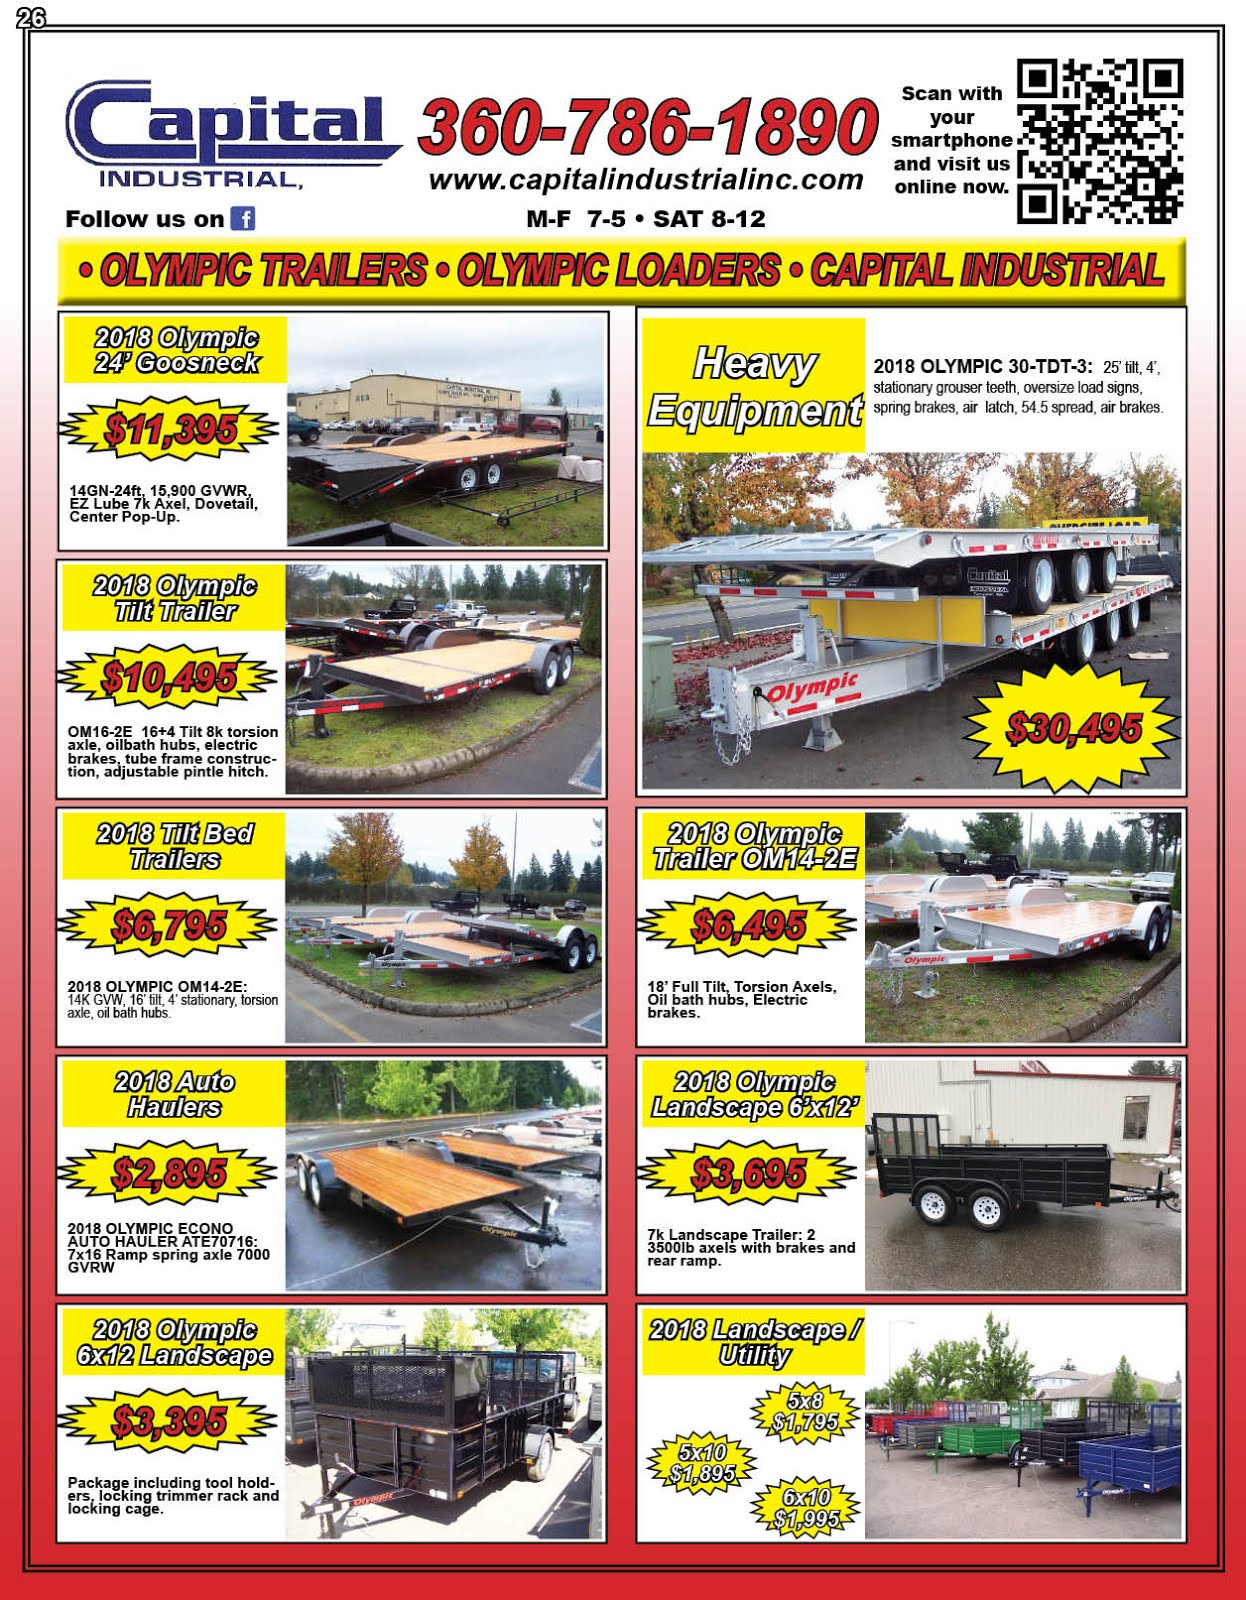 Capital Industrial, Inc & Olympic Trailer Mfg